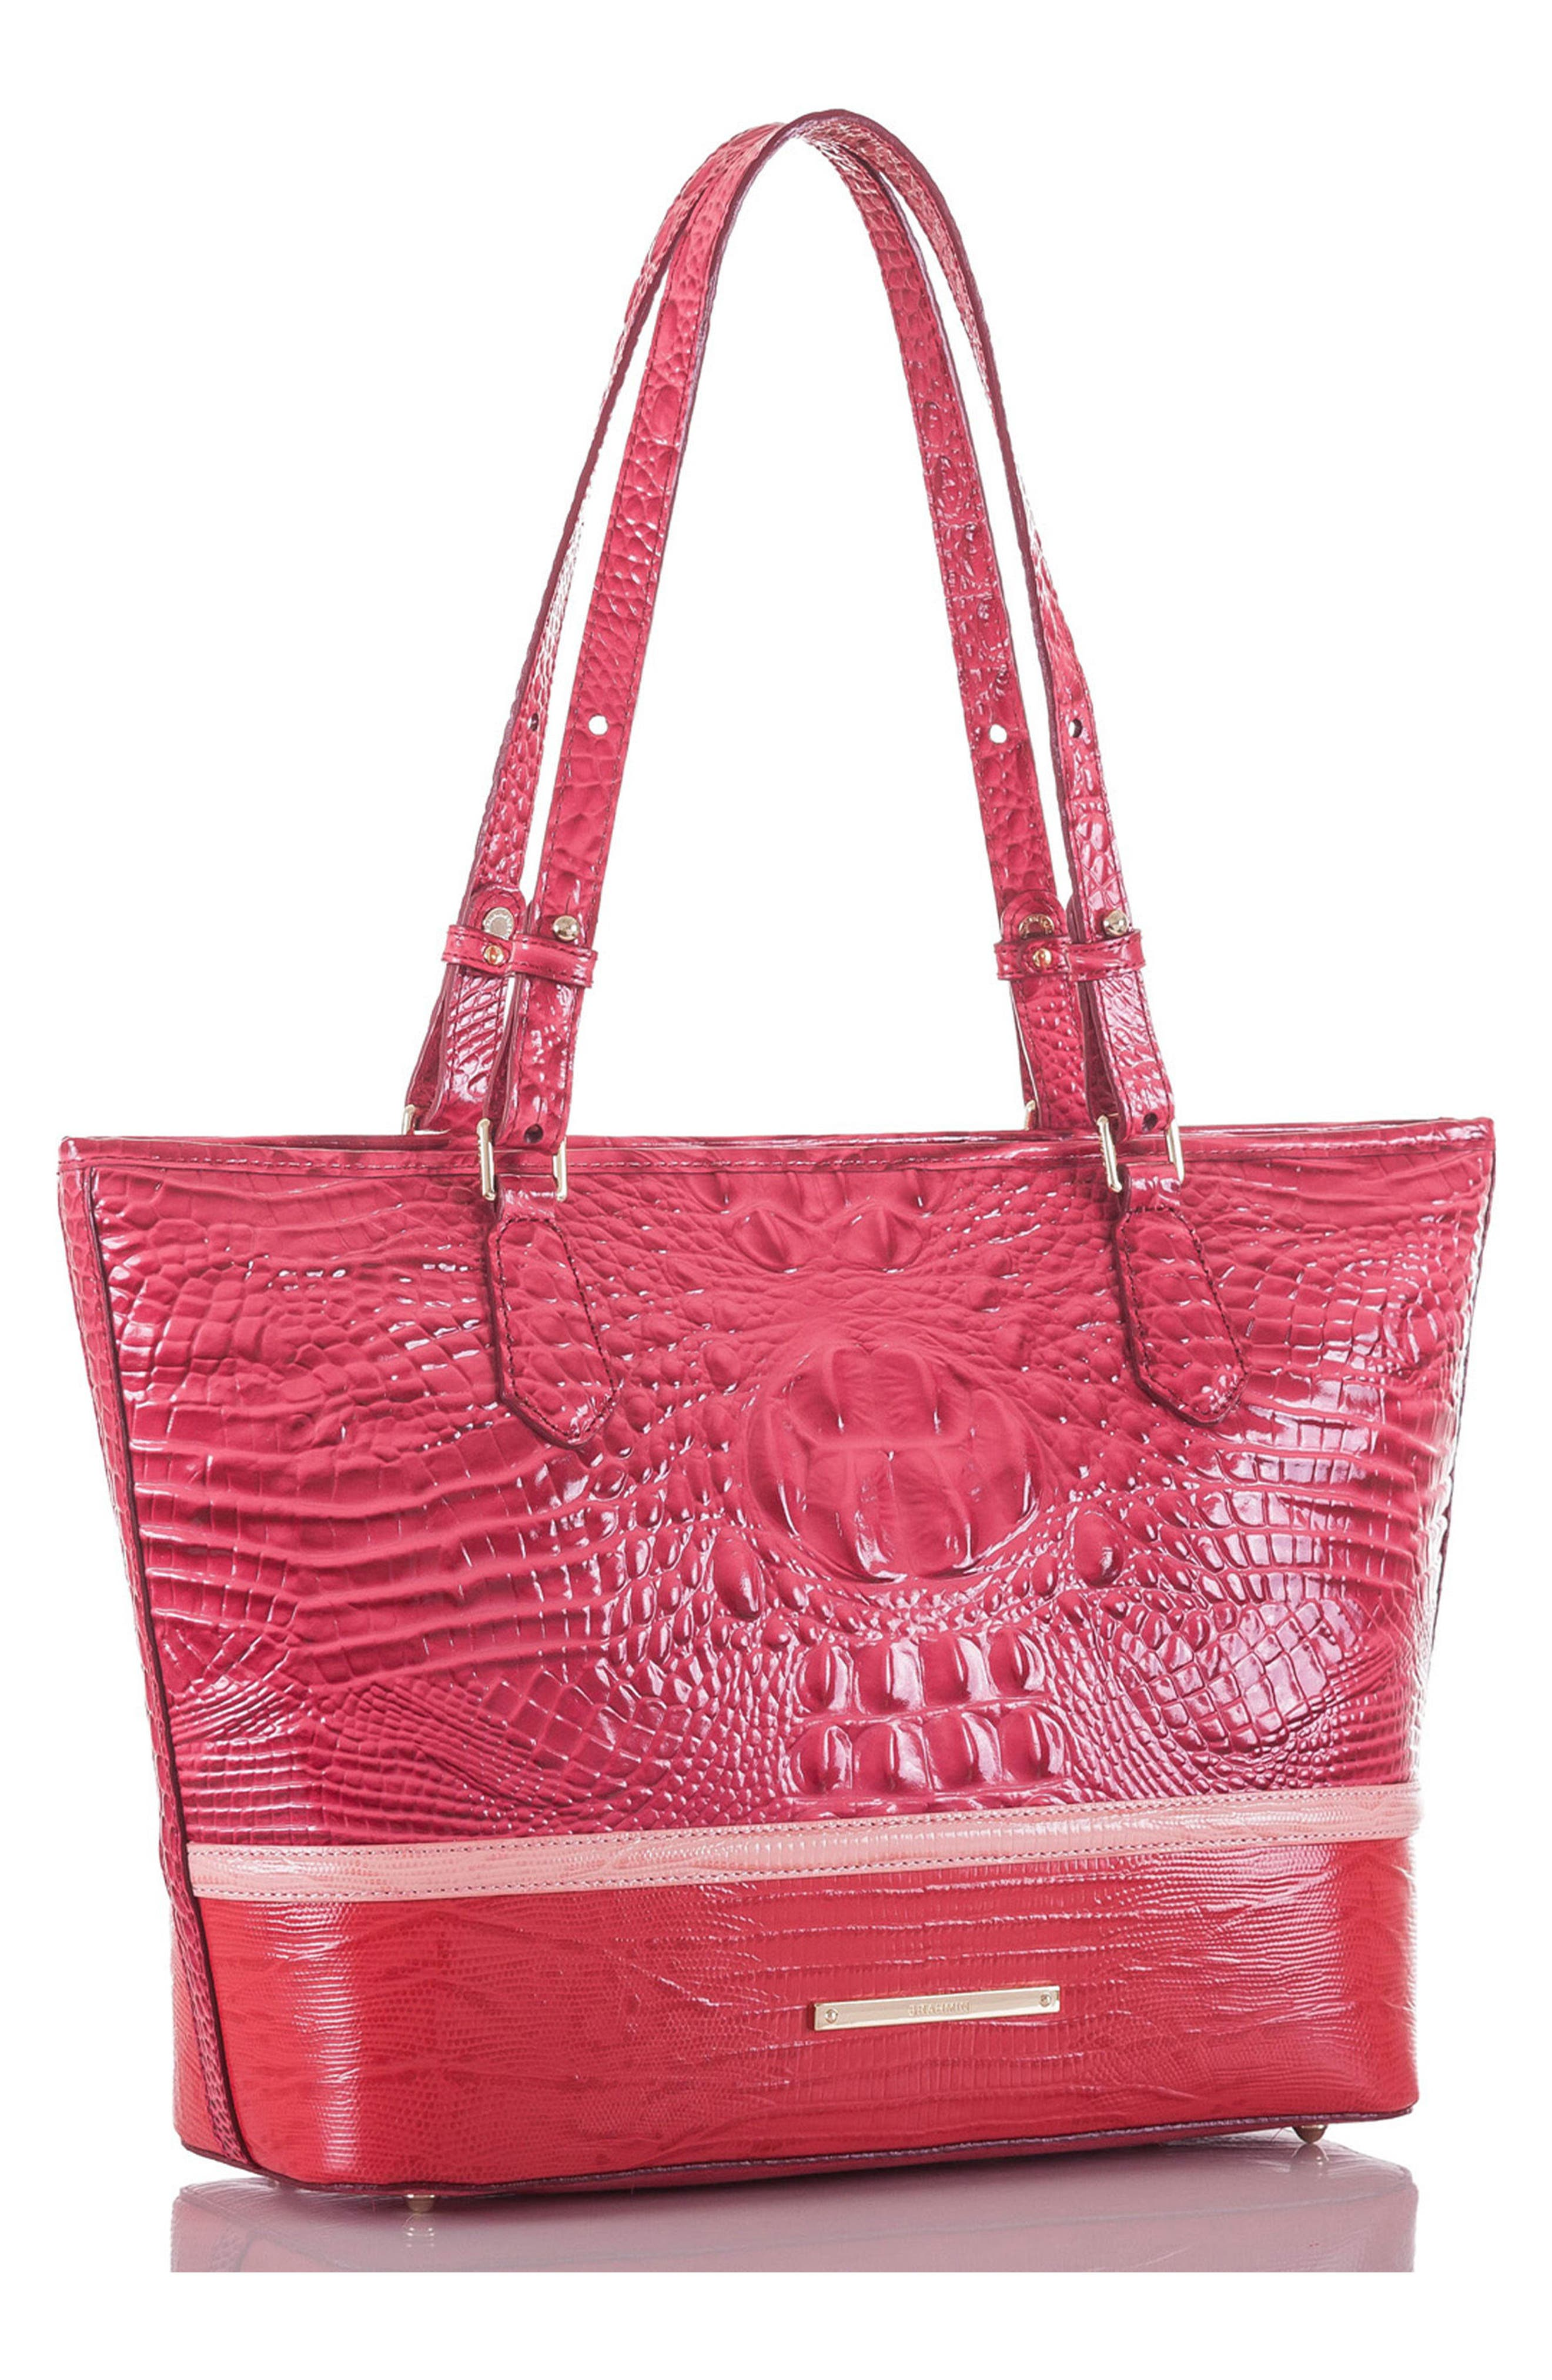 Medium Asher Embossed Leather Tote,                             Alternate thumbnail 4, color,                             650